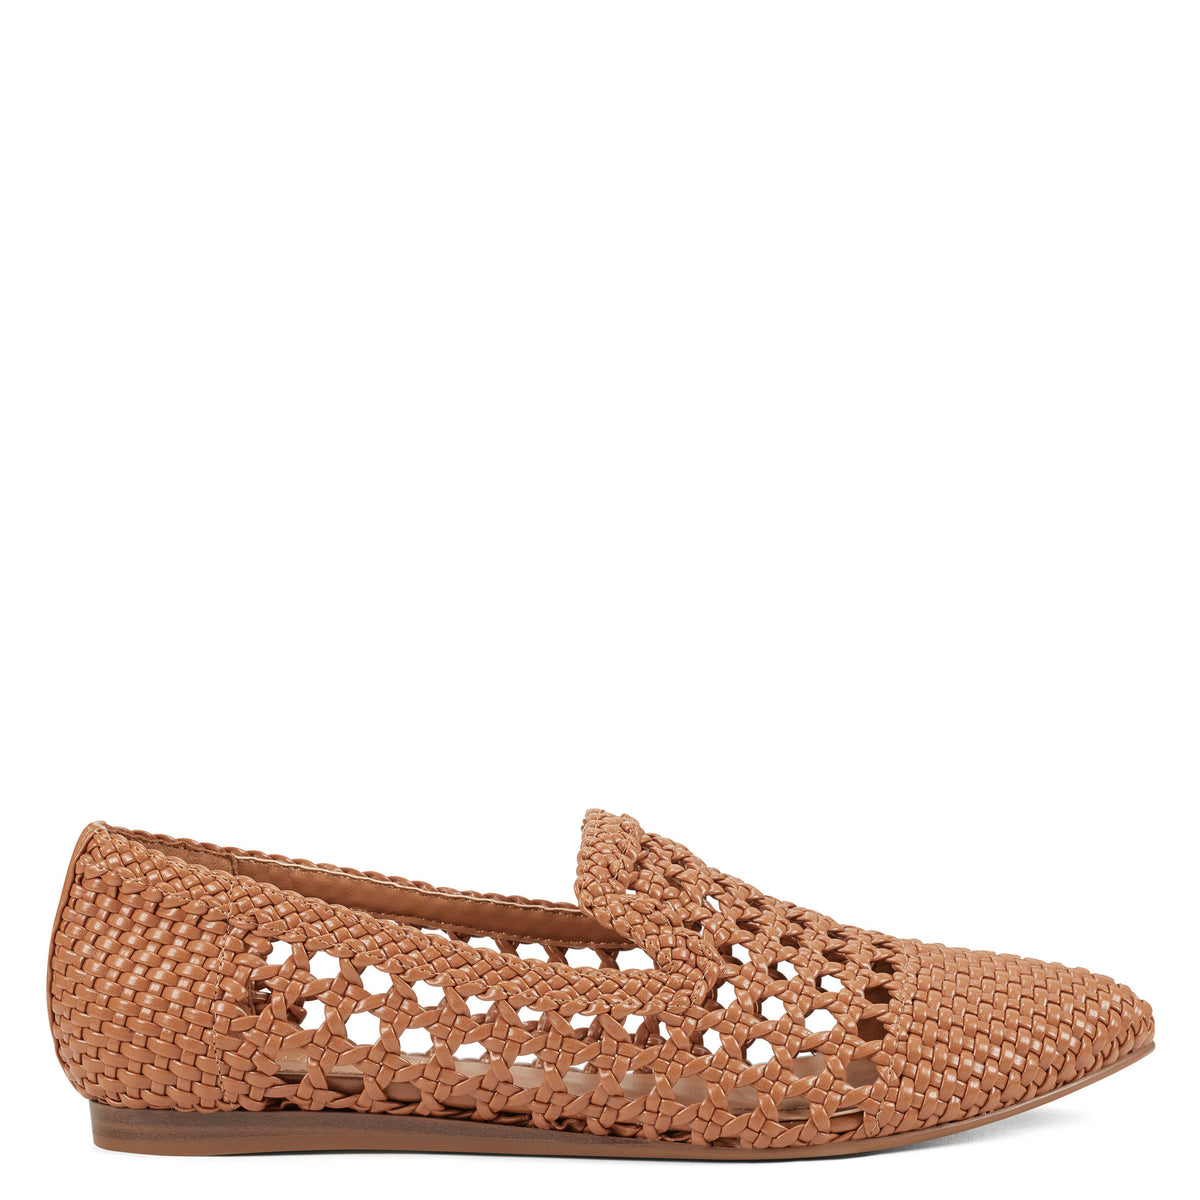 haddie-loafer-flat-in-natural